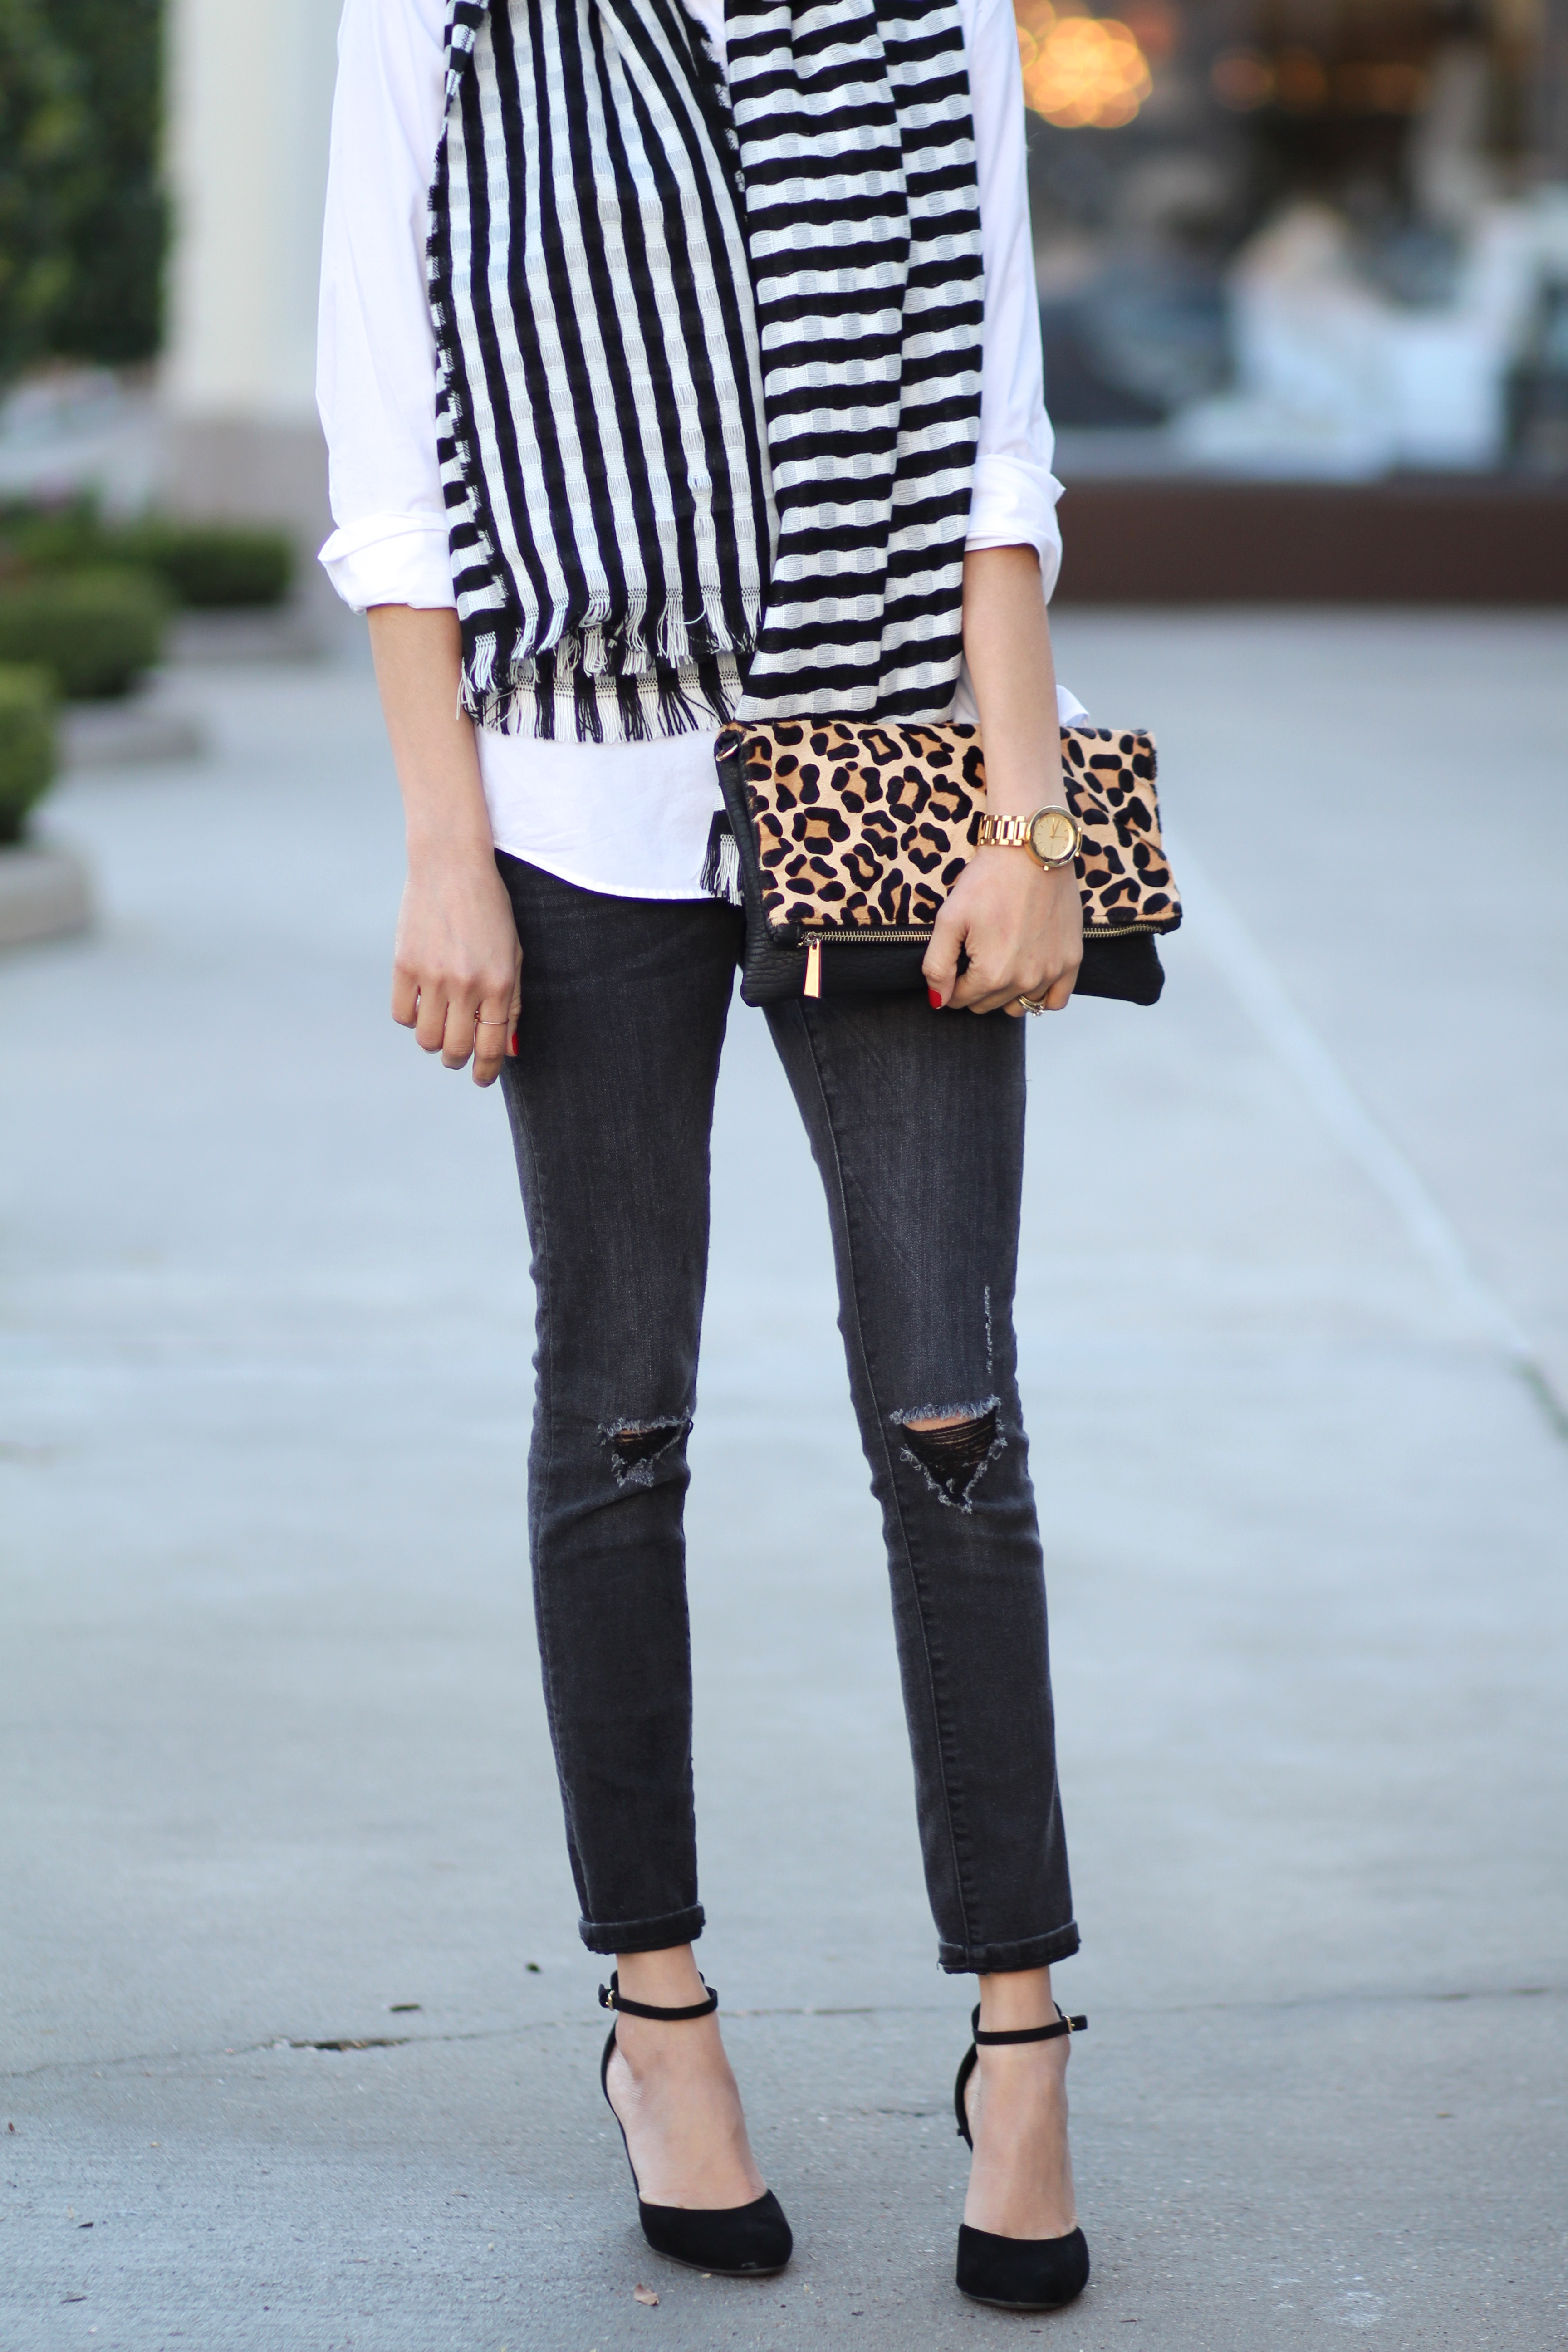 Lifestyle blogger Lilly Beltran of Daily Craving wearing black skinny jeans and striped blanket scarf